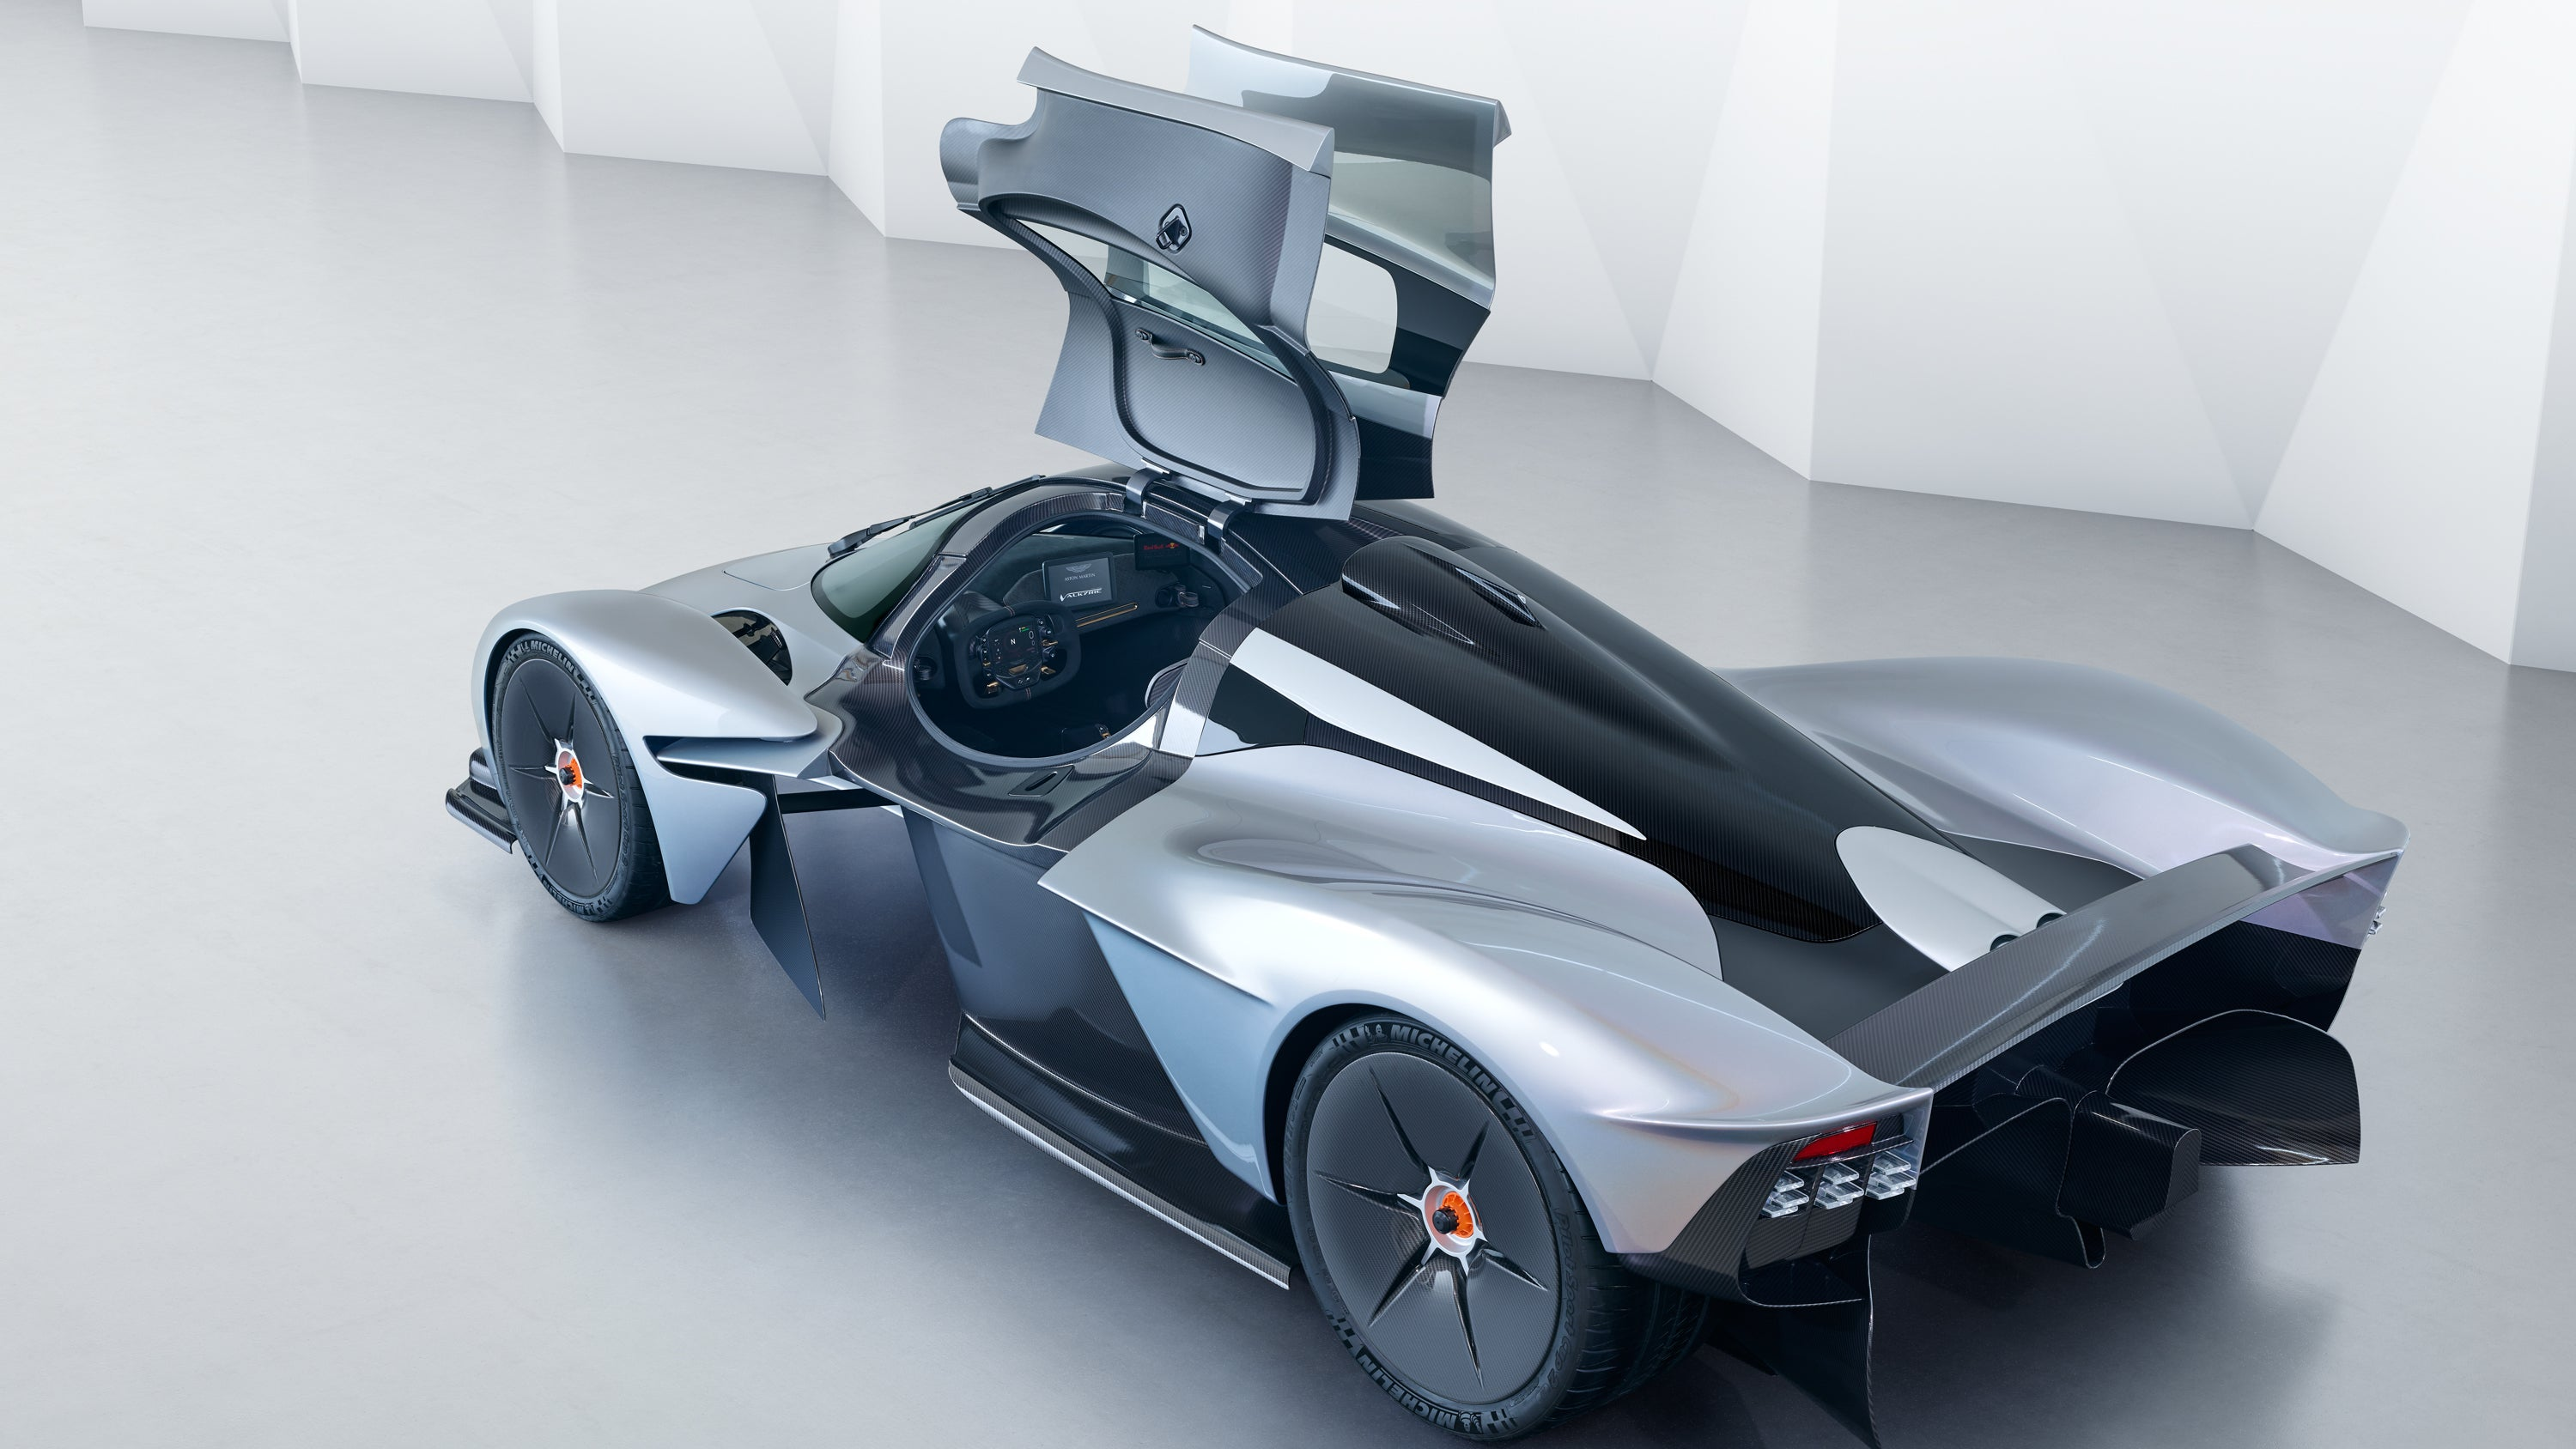 This is the Aston Martin Valkyrie. It doesn\u0027t have doors. It has a circular hatch and I have no idea what anyone\u0027s supposed to do with it. & I Have Questions About This Door